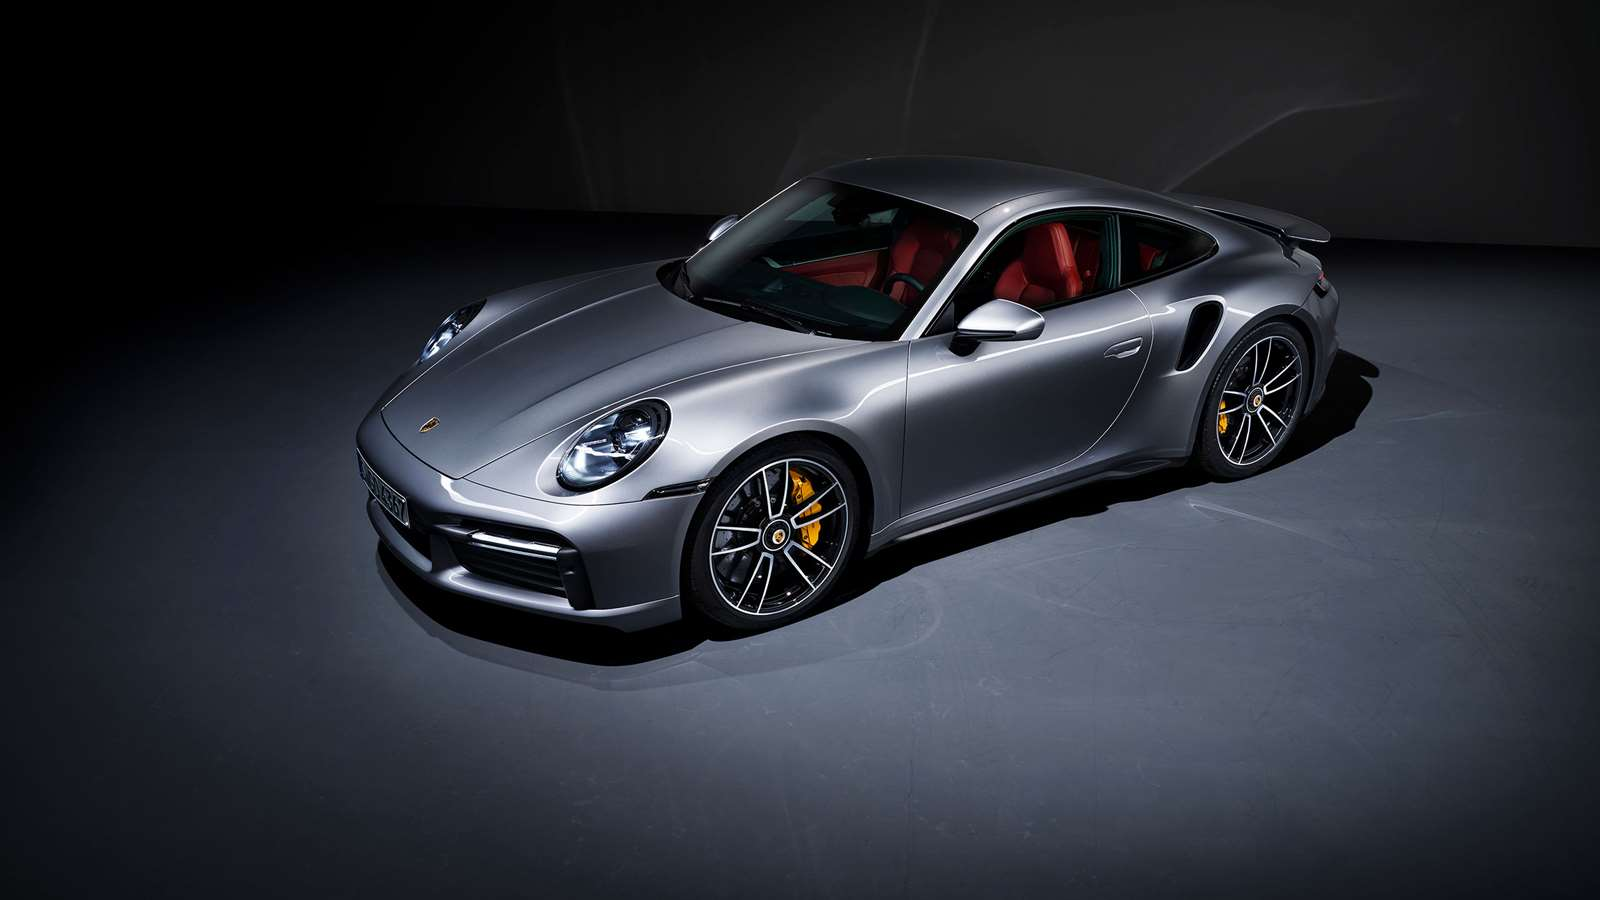 The 992 Porsche 911 Turbo S Is The Most Capable 911 Turbo Ever Grr